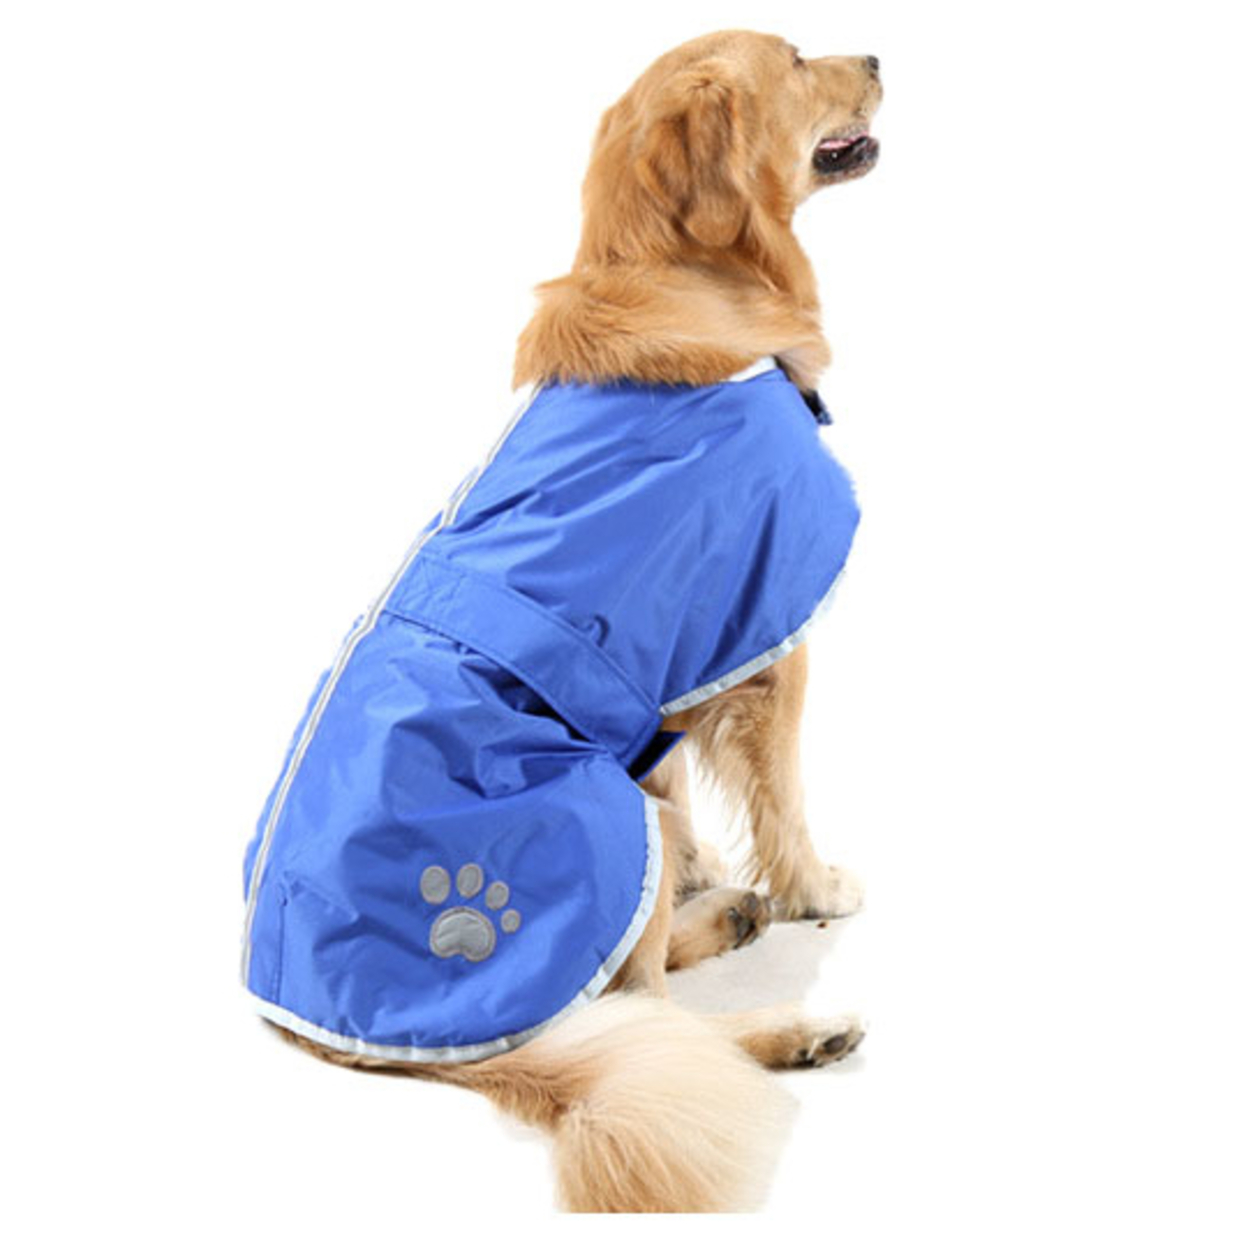 Zack & Zoey Polyester Nor'easter Dog Blanket Coat - m 59c4be362a00e459651cf3f2